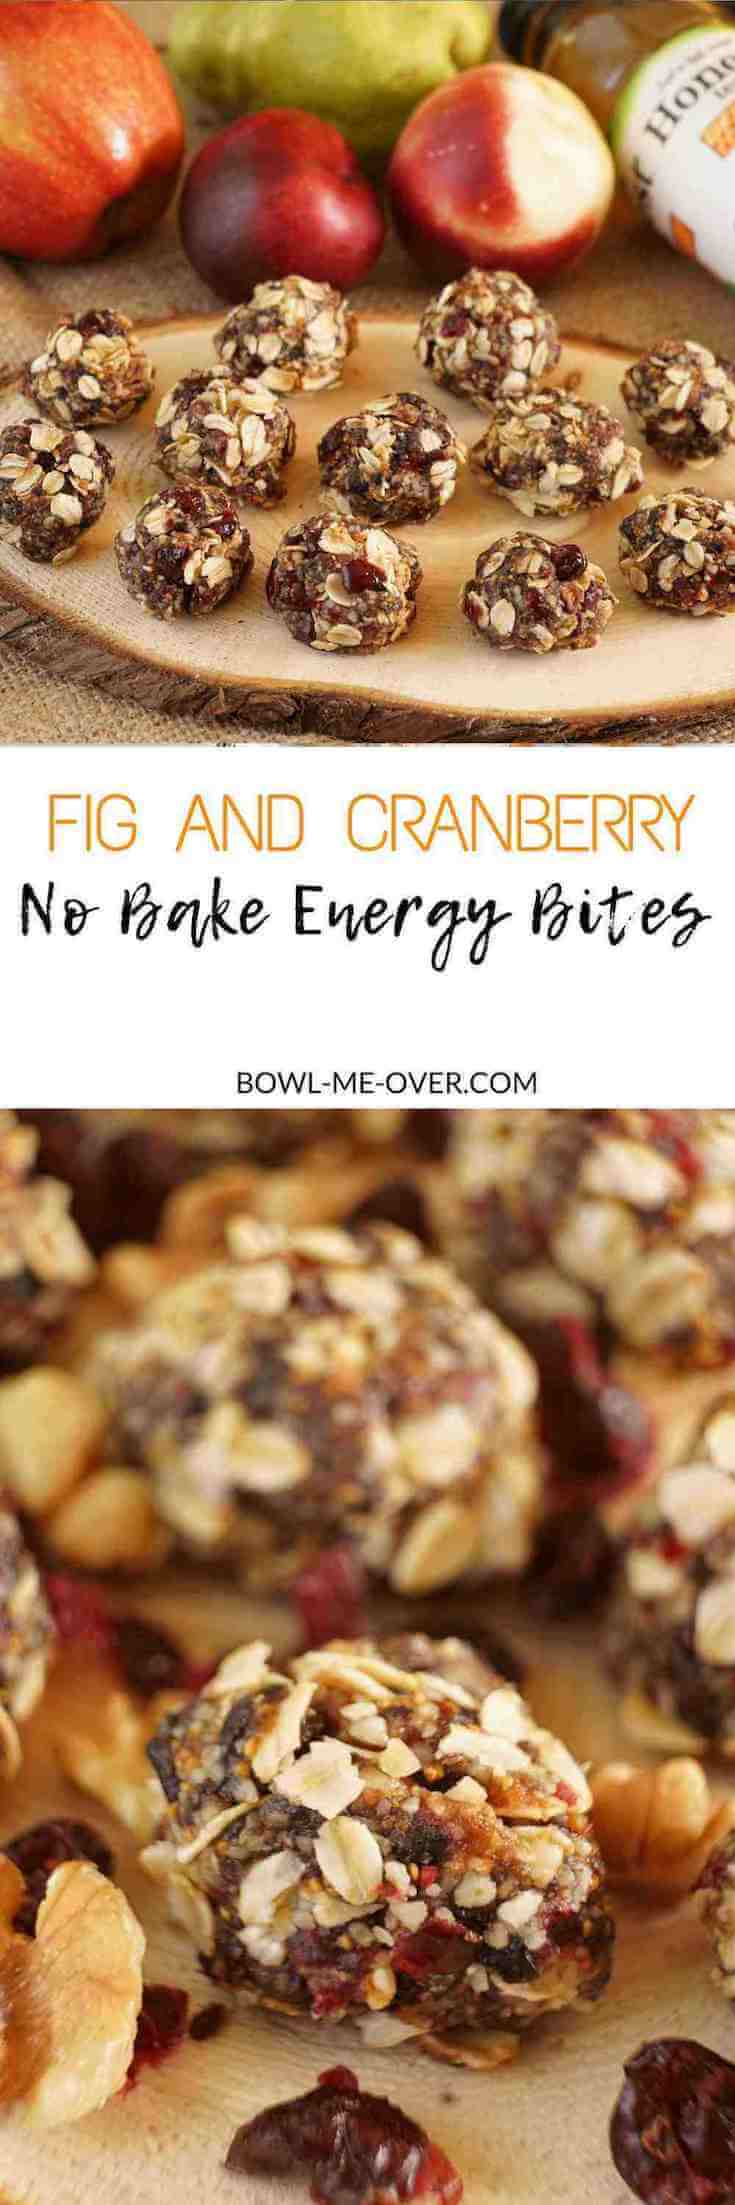 Fig and Cranberry No Bake Energy Bites are an energy packed treat you can store in your refrigerator or freezer for a on-the-go snack!